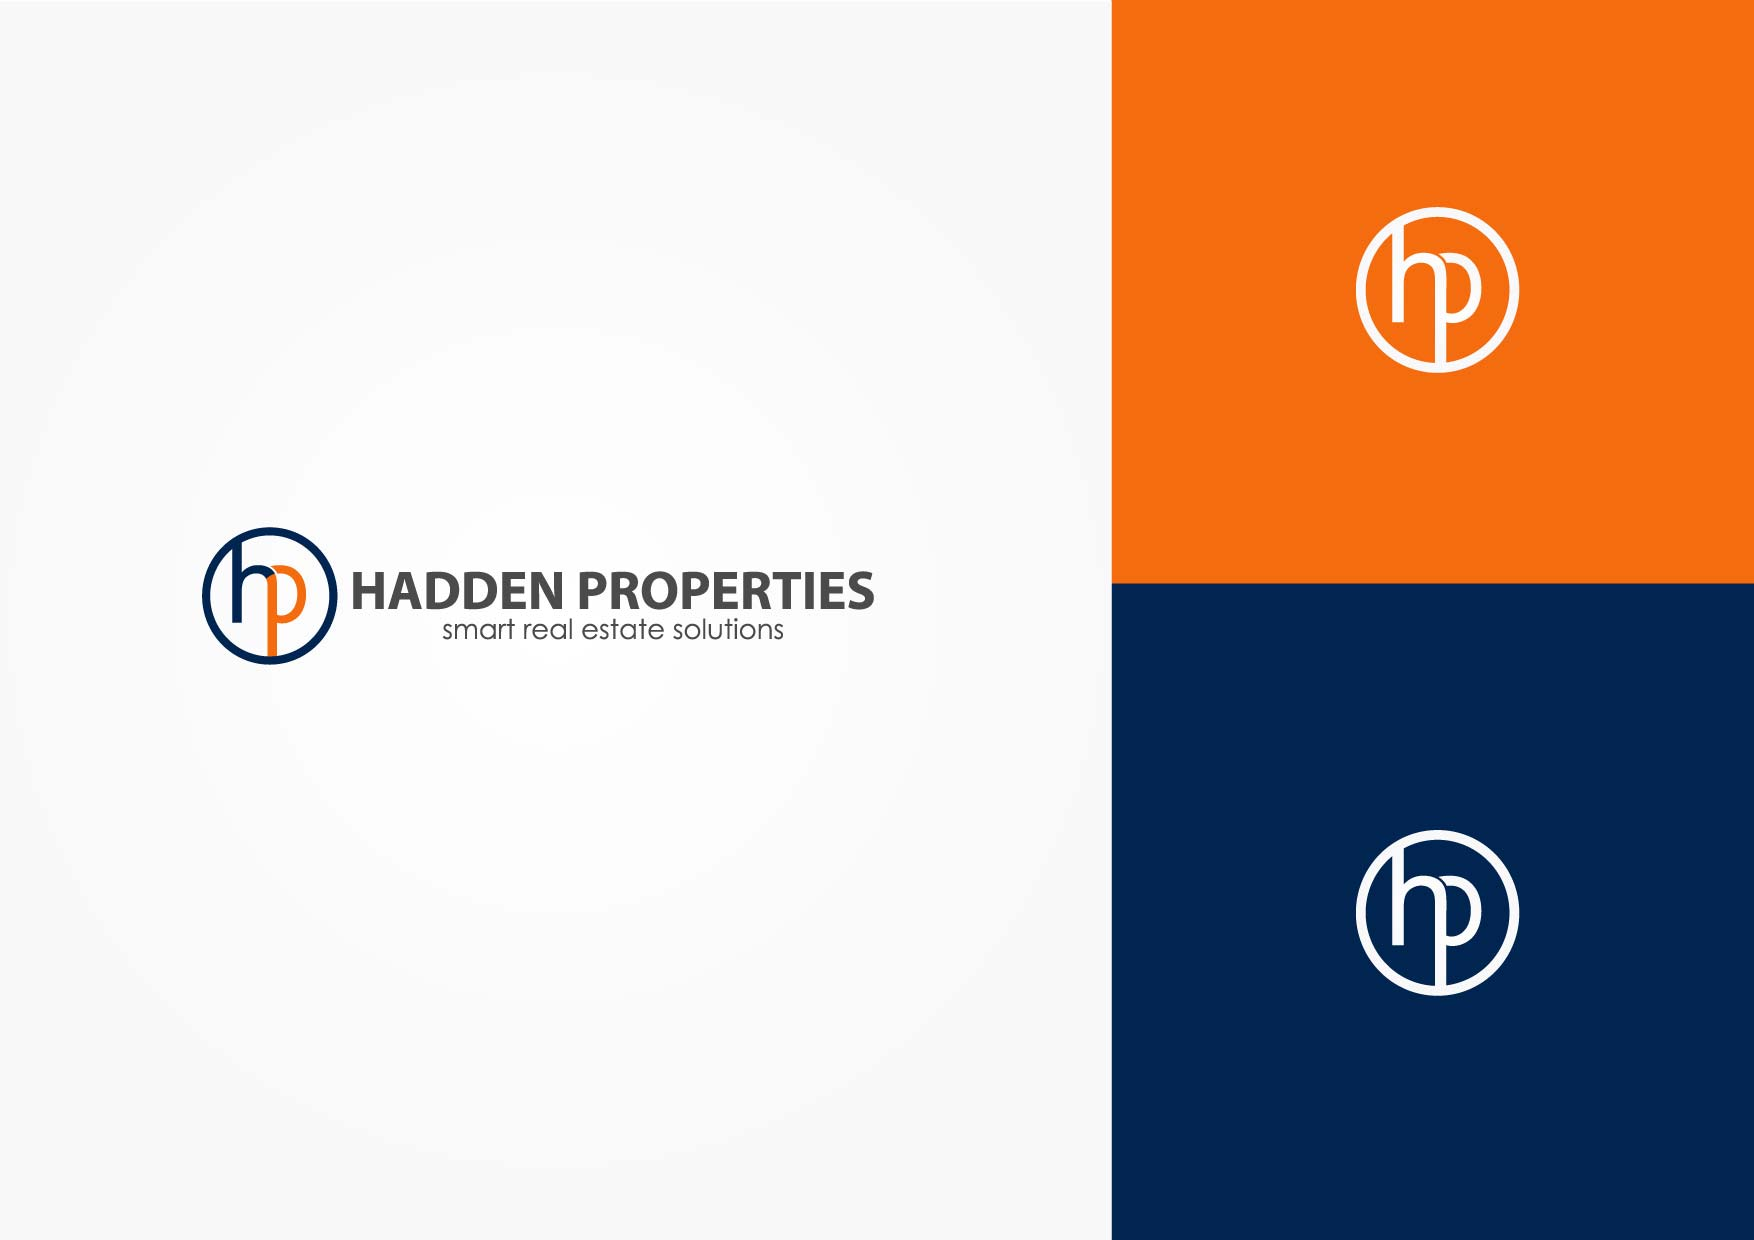 Logo Design by Osi Indra - Entry No. 135 in the Logo Design Contest Artistic Logo Design for Hadden Properties.